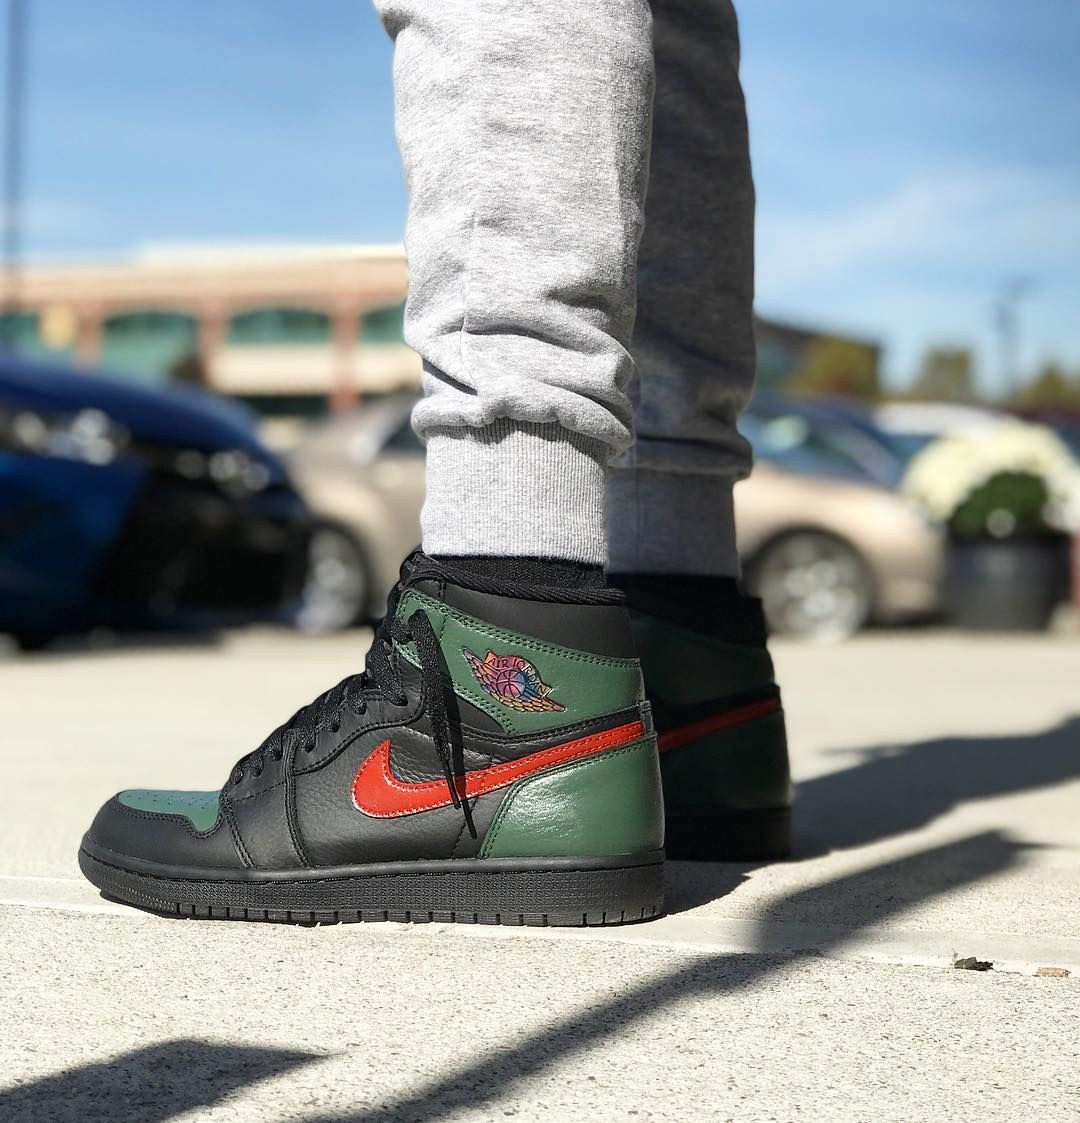 f41d99e7d071e7 GUCCI Custom Air Jordan 1 High